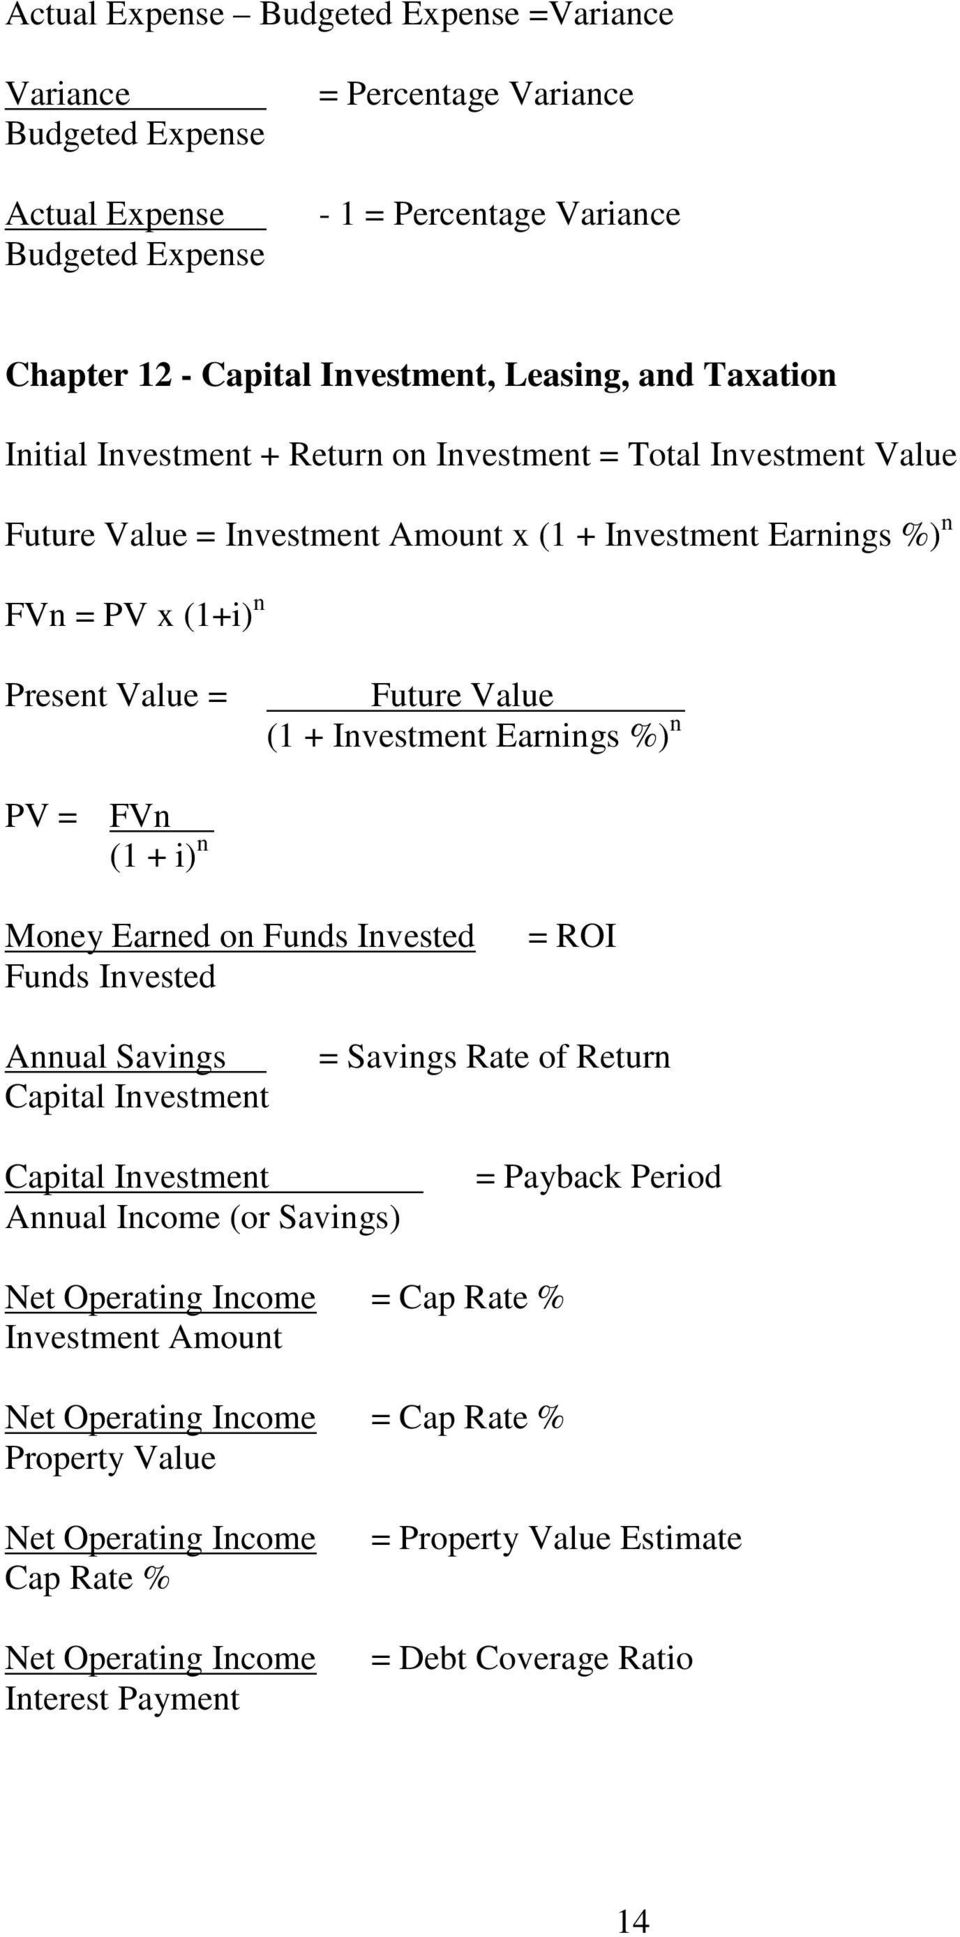 Investment Earnings %) n PV = FVn (1 + i) n Money Earned on Funds Invested Funds Invested = ROI Annual Savings Capital Investment = Savings Rate of Return Capital Investment Annual Income (or